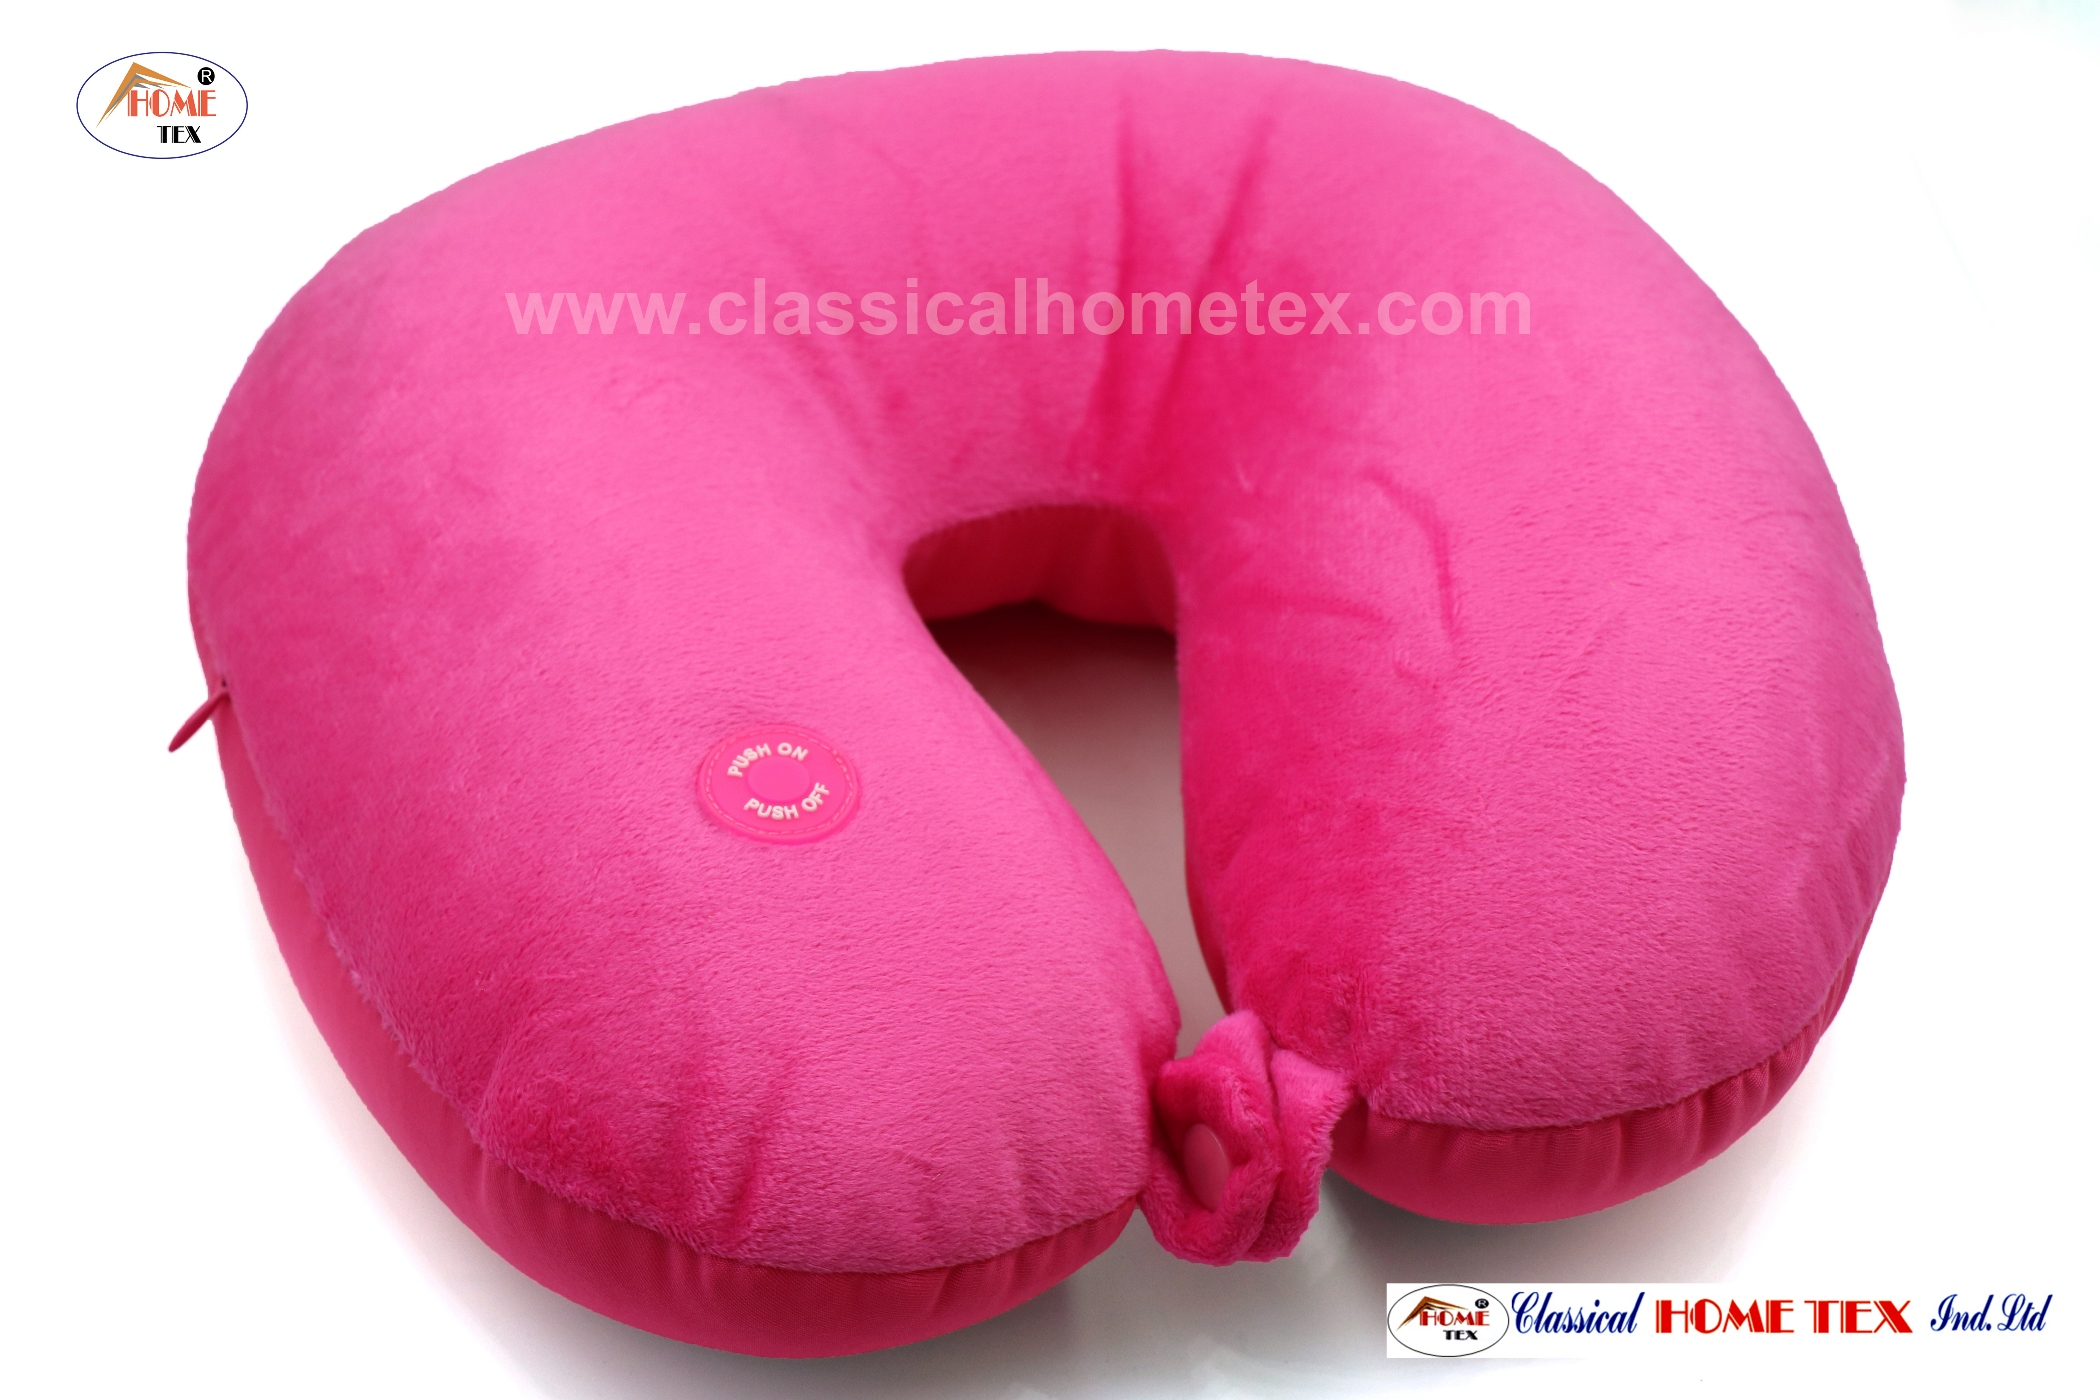 find a huge collection of neck pillow pillow cushion pillow cover cushion cover for your sofa or bed on home tex